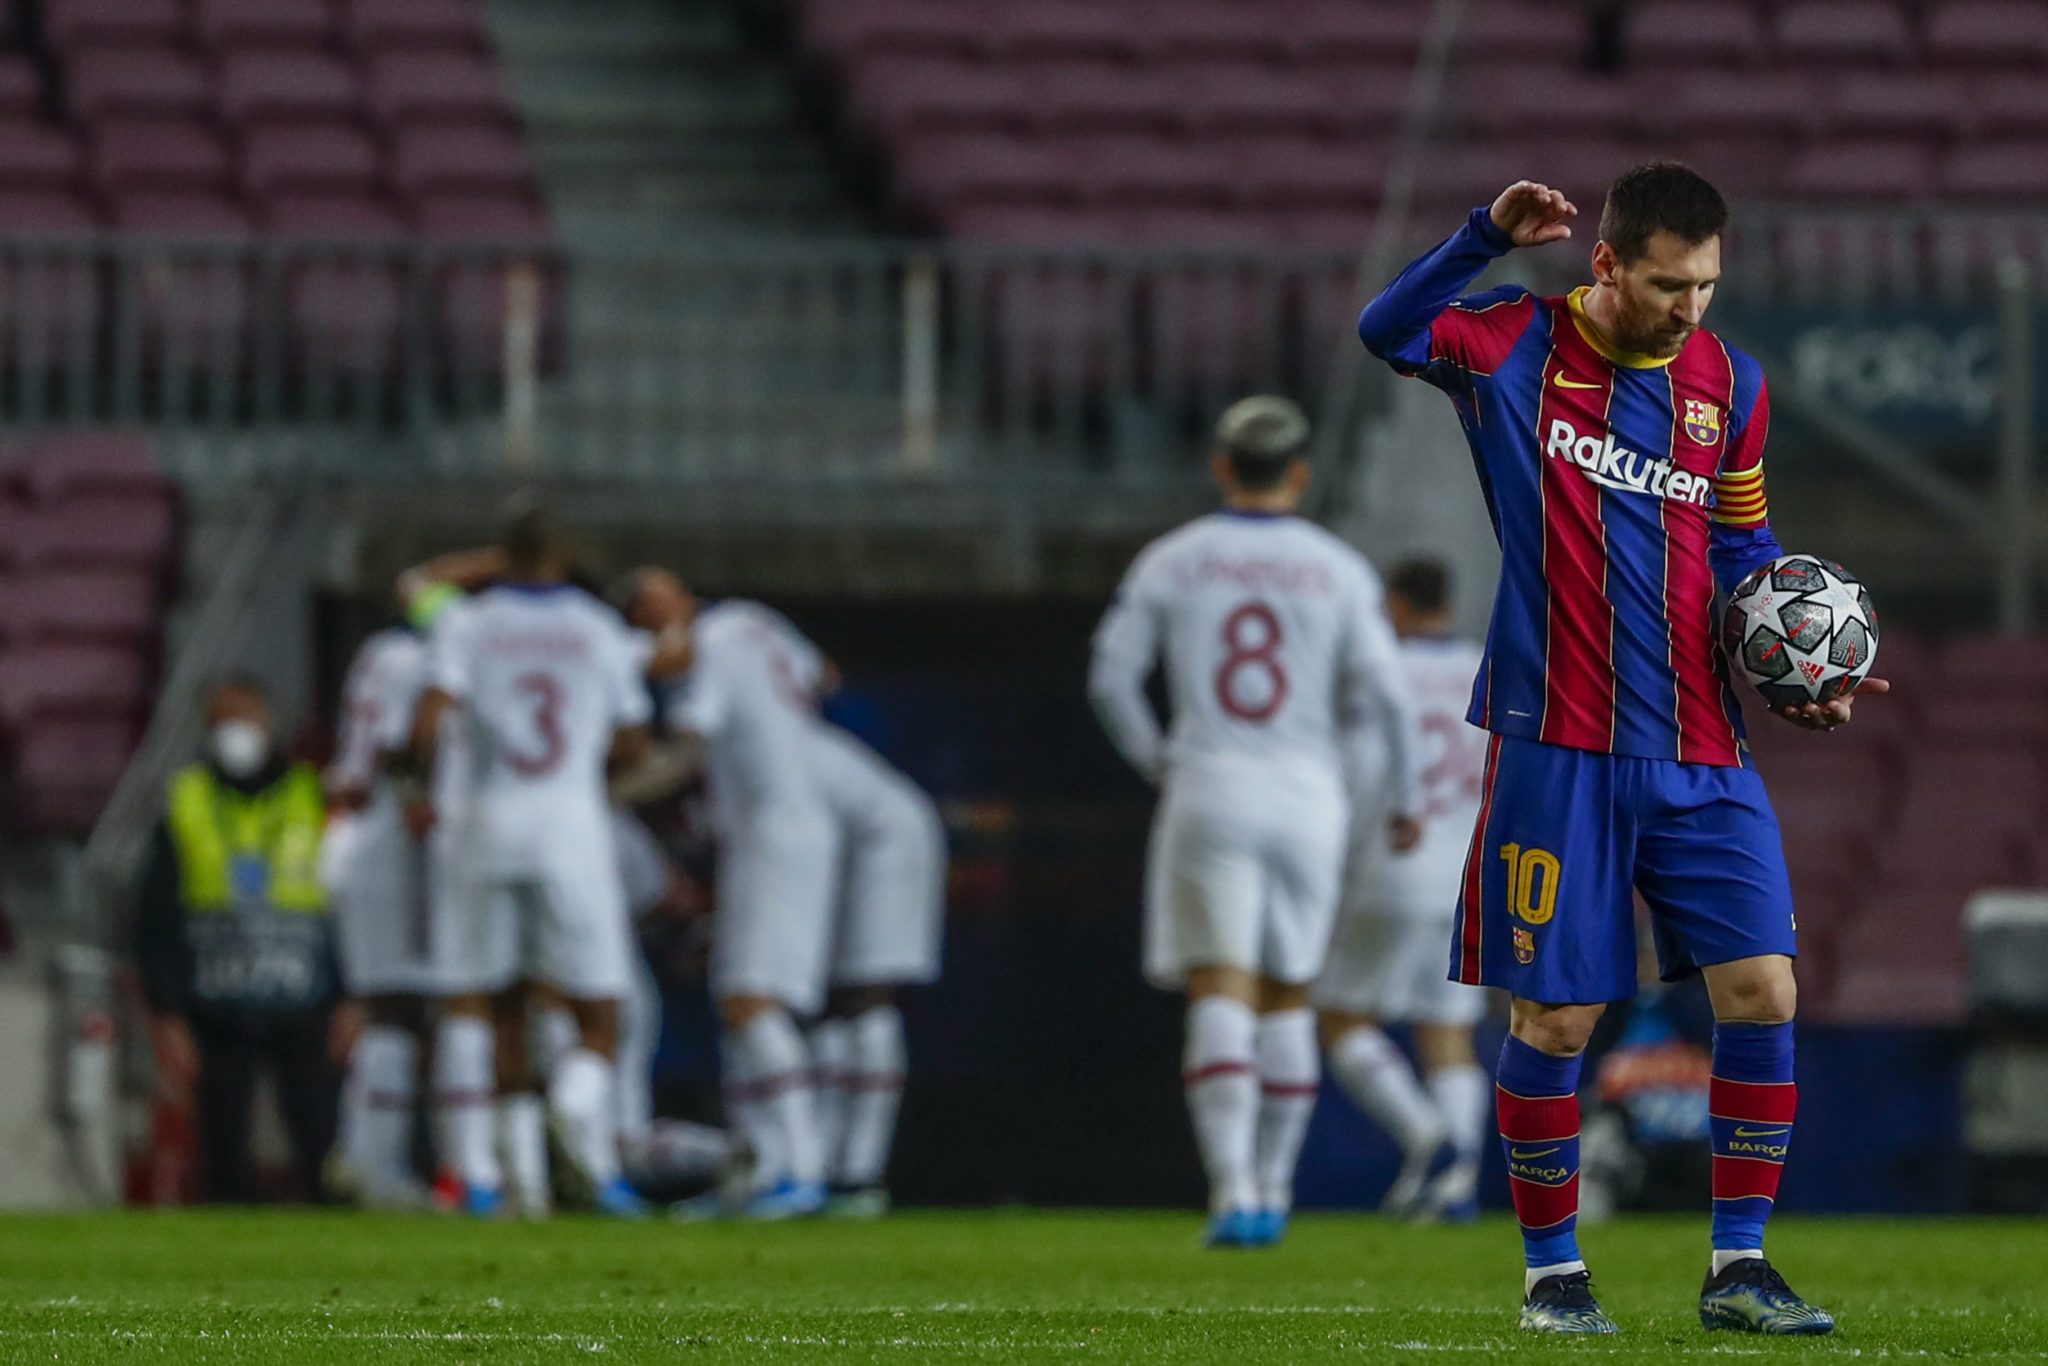 Messi reacts in digust after a PSG goal at Camp Nou.